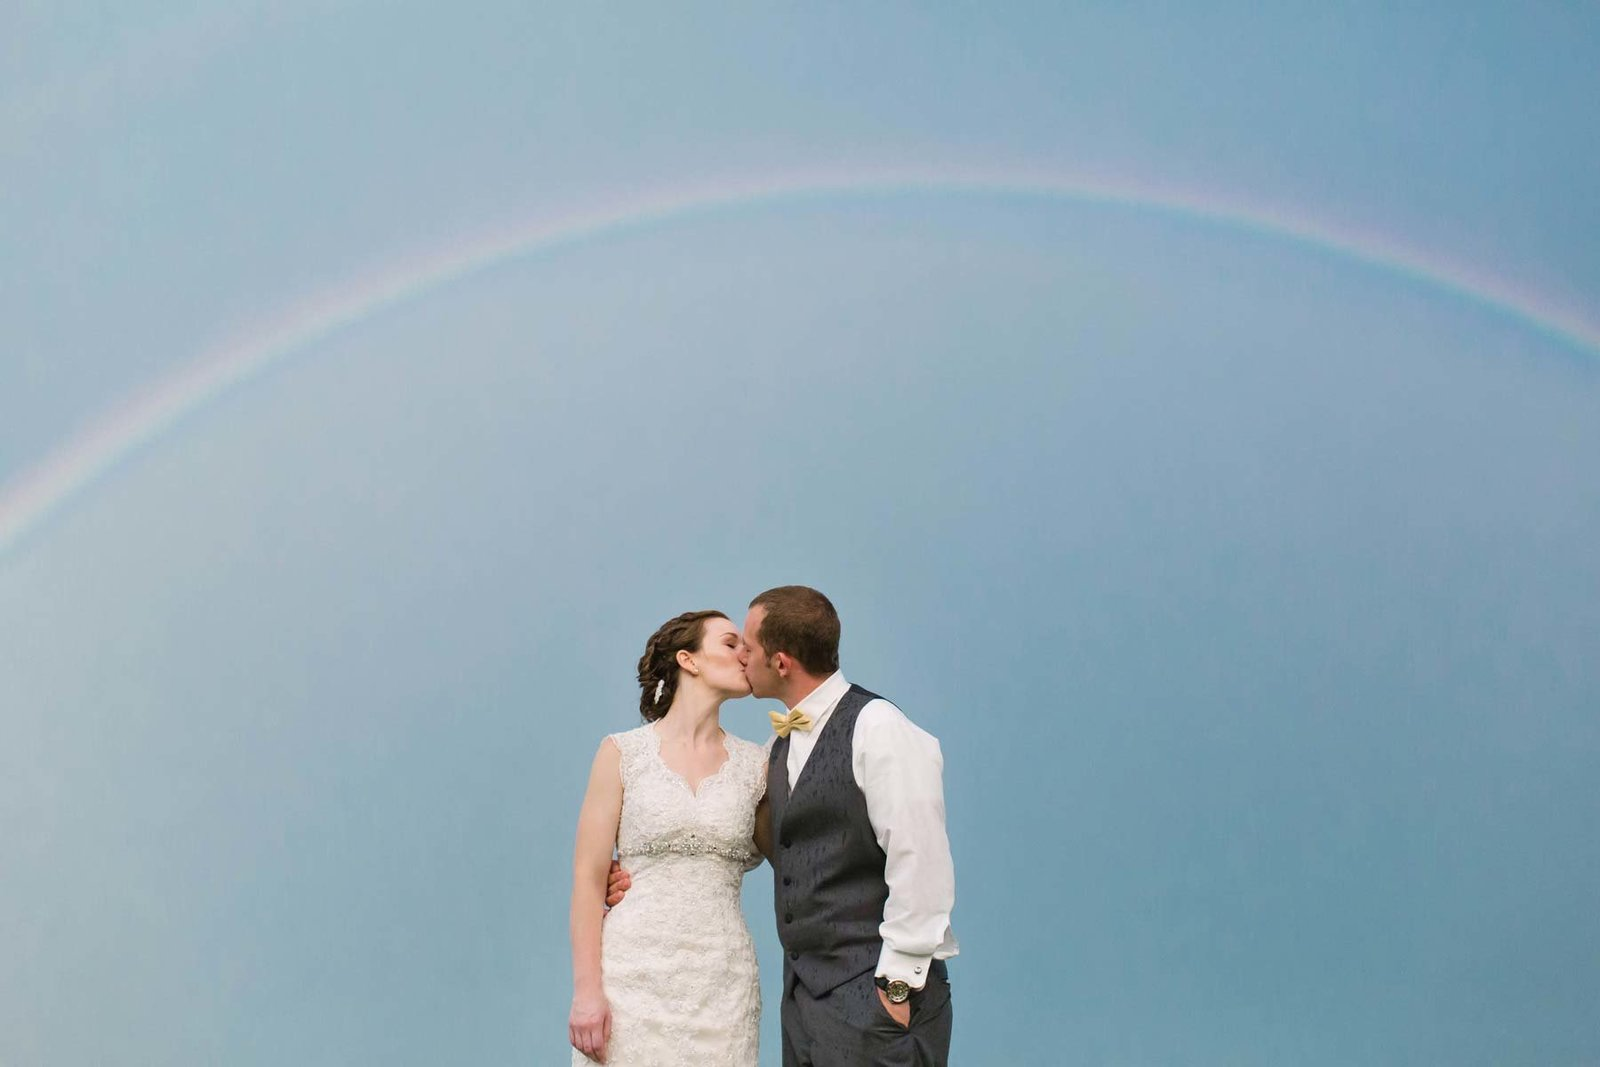 Veasey Park Groveland Massachusetts Wedding Photographers Rainbow Image Bride Groom I am Sarah V Photography